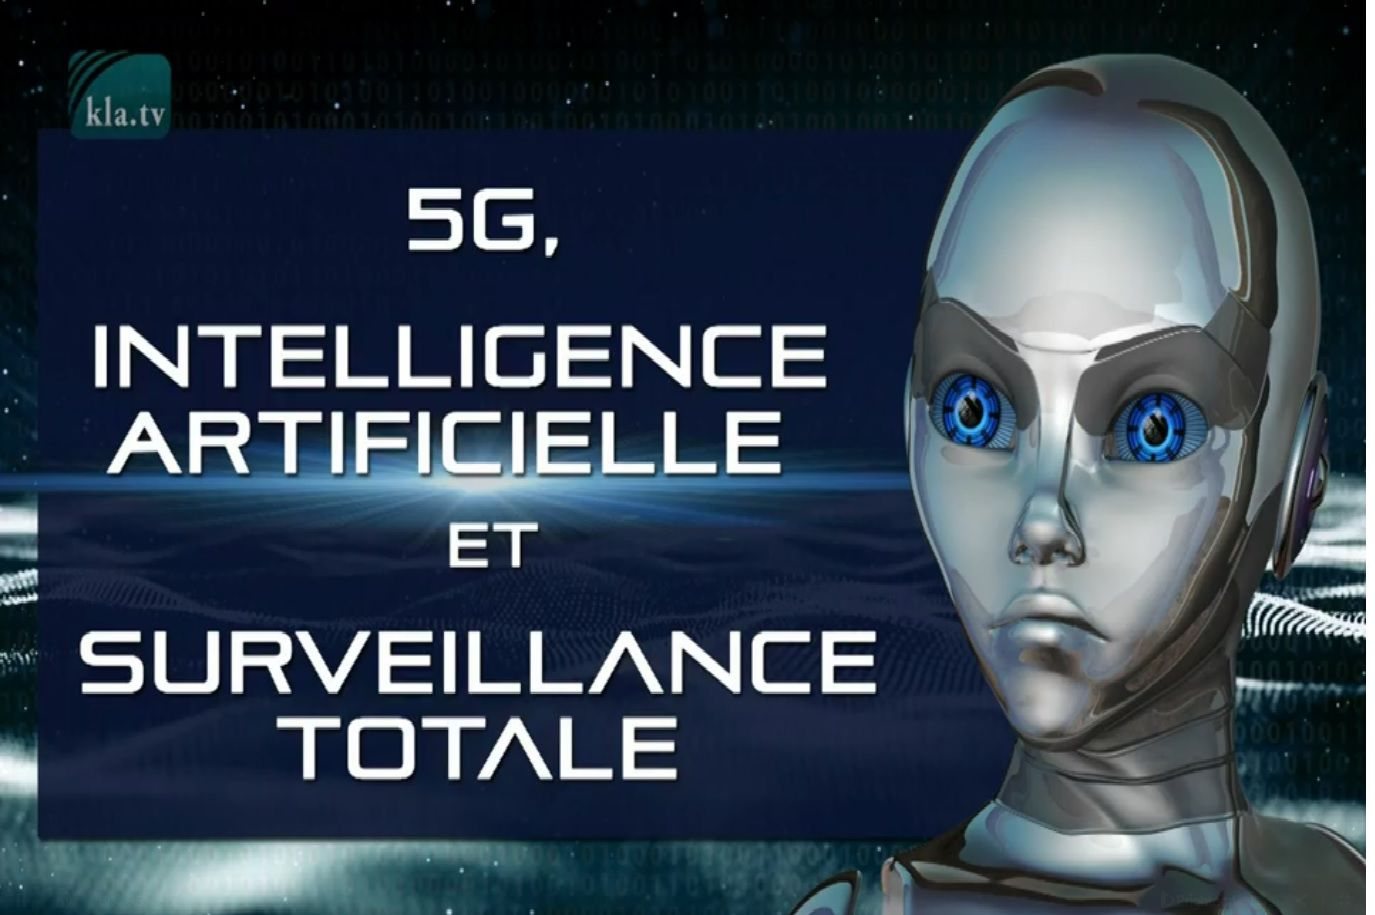 Intelligence artificielle 5G et surveillance totale